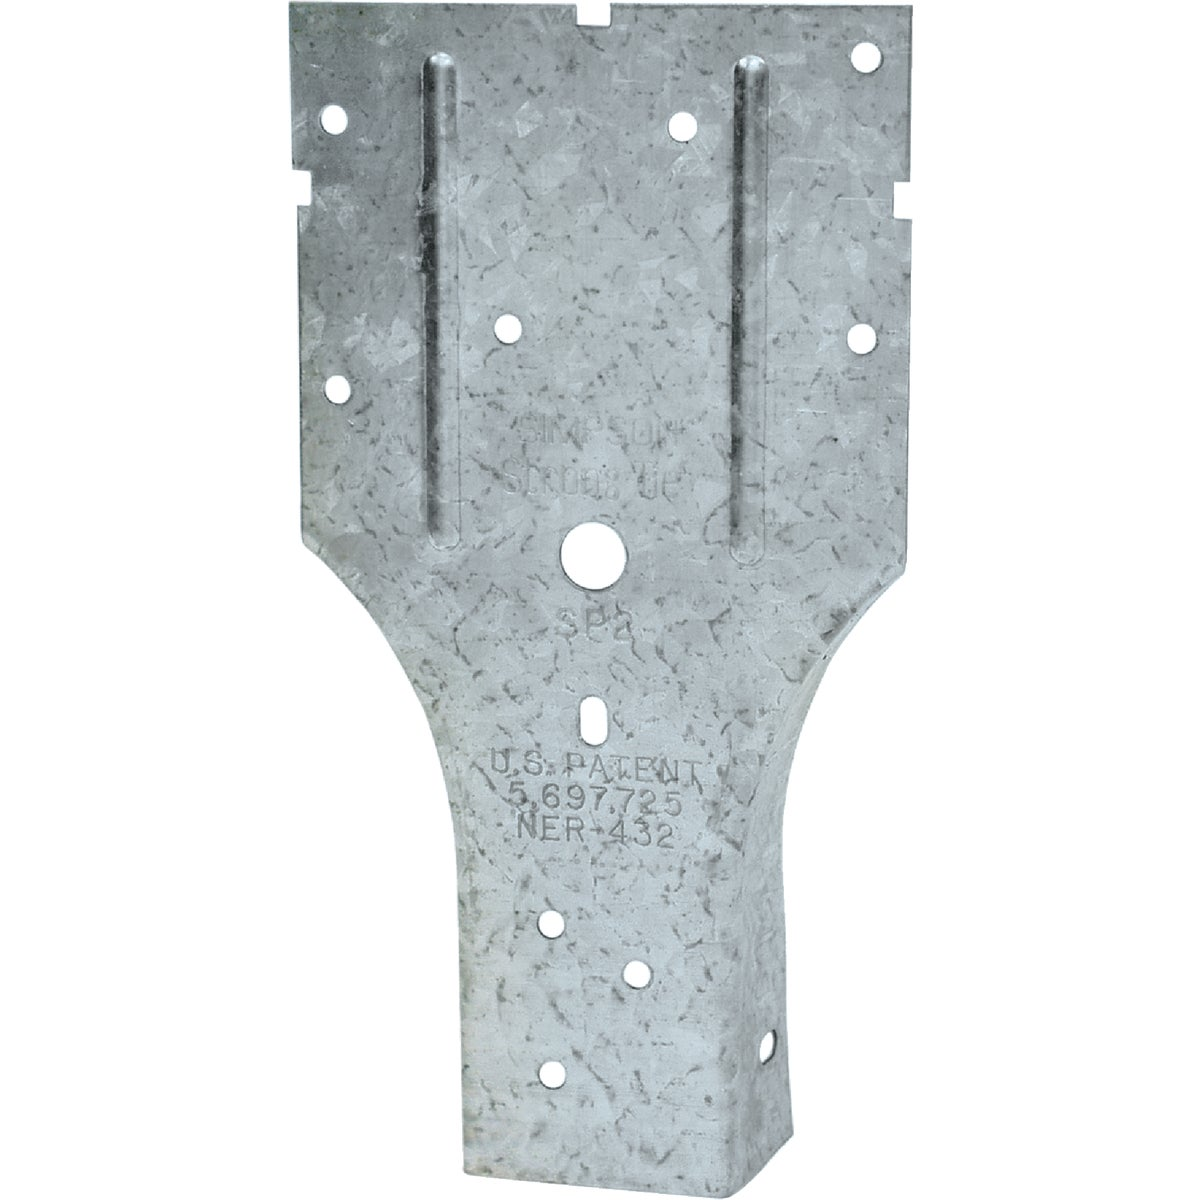 STUD PLATE - SP2 by Simpson Strong Tie